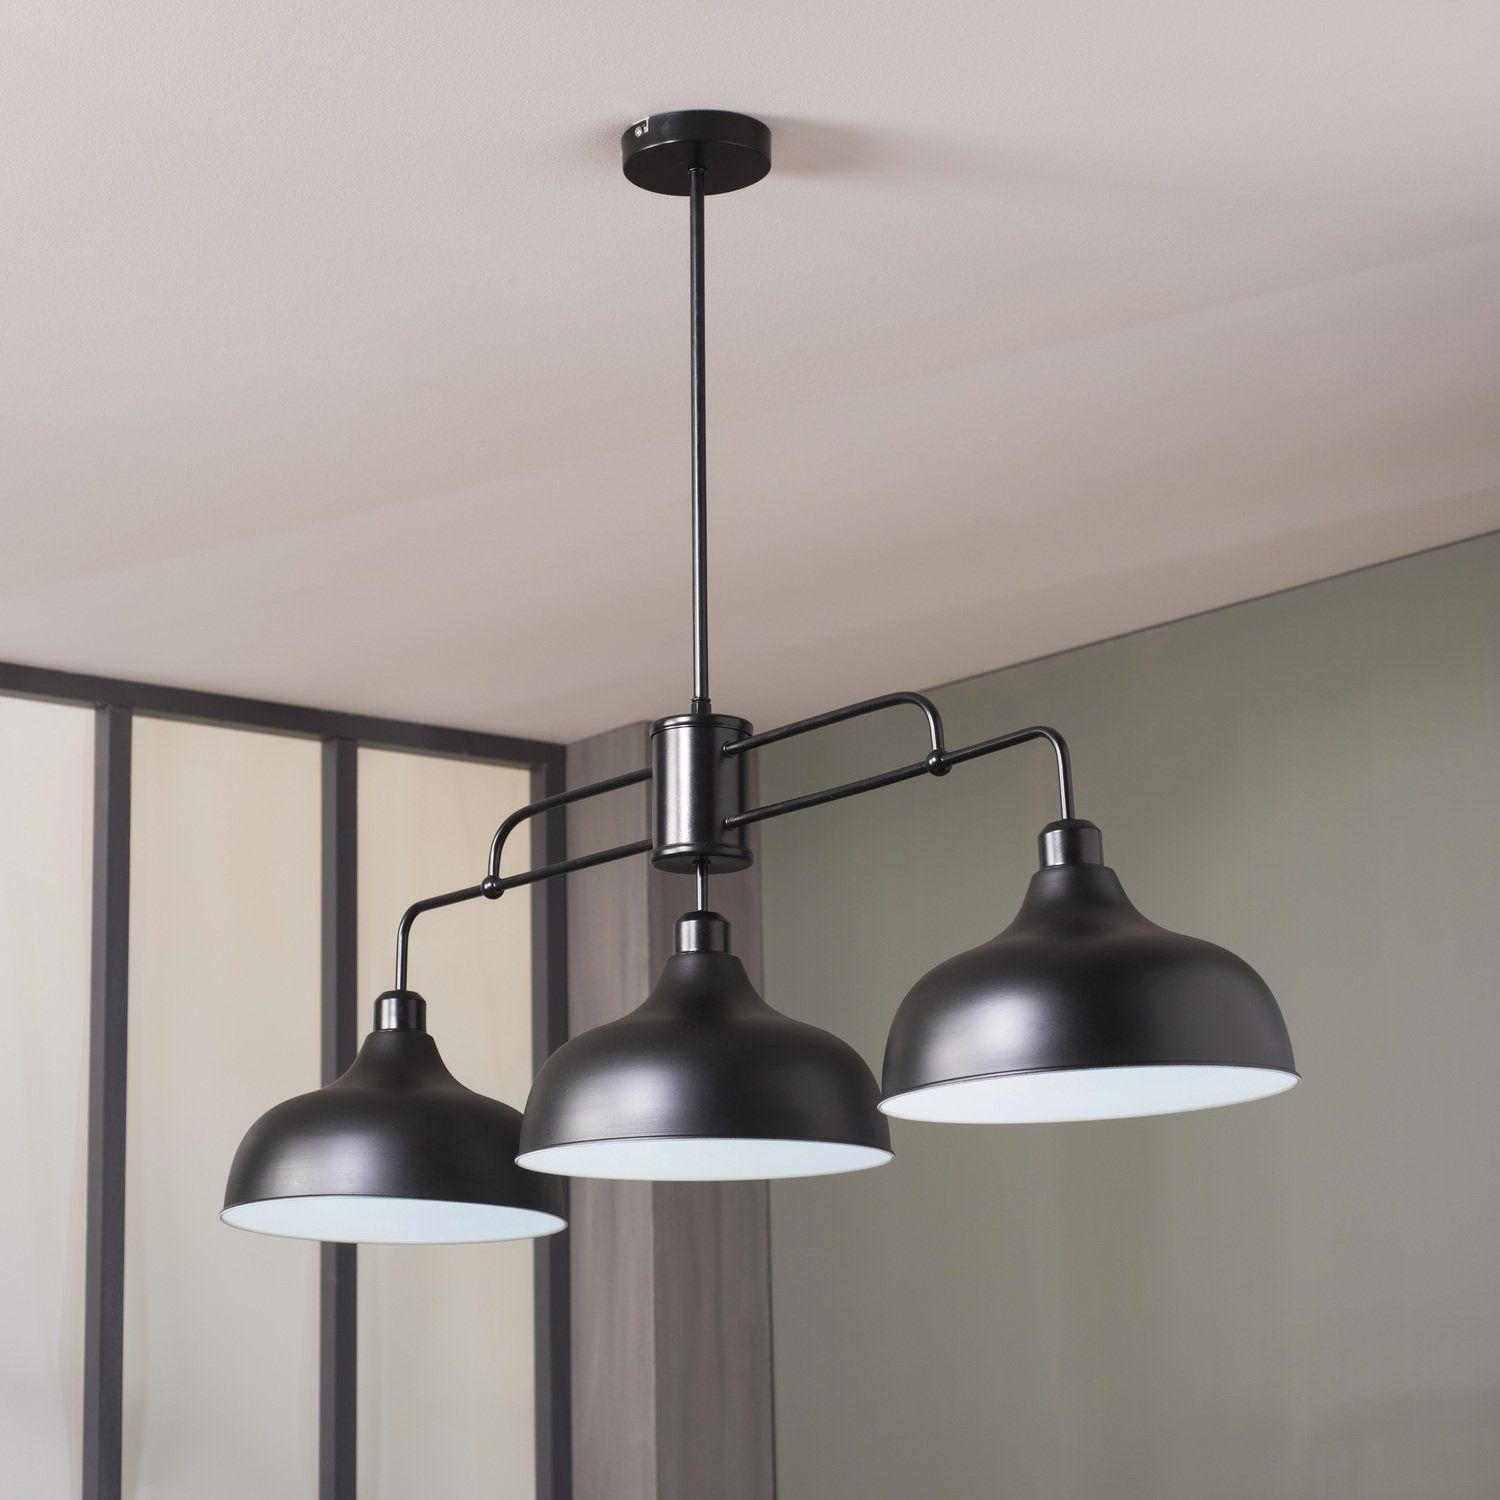 cette suspension design adopte un style r solument ForLuminaire Cuisine Suspension